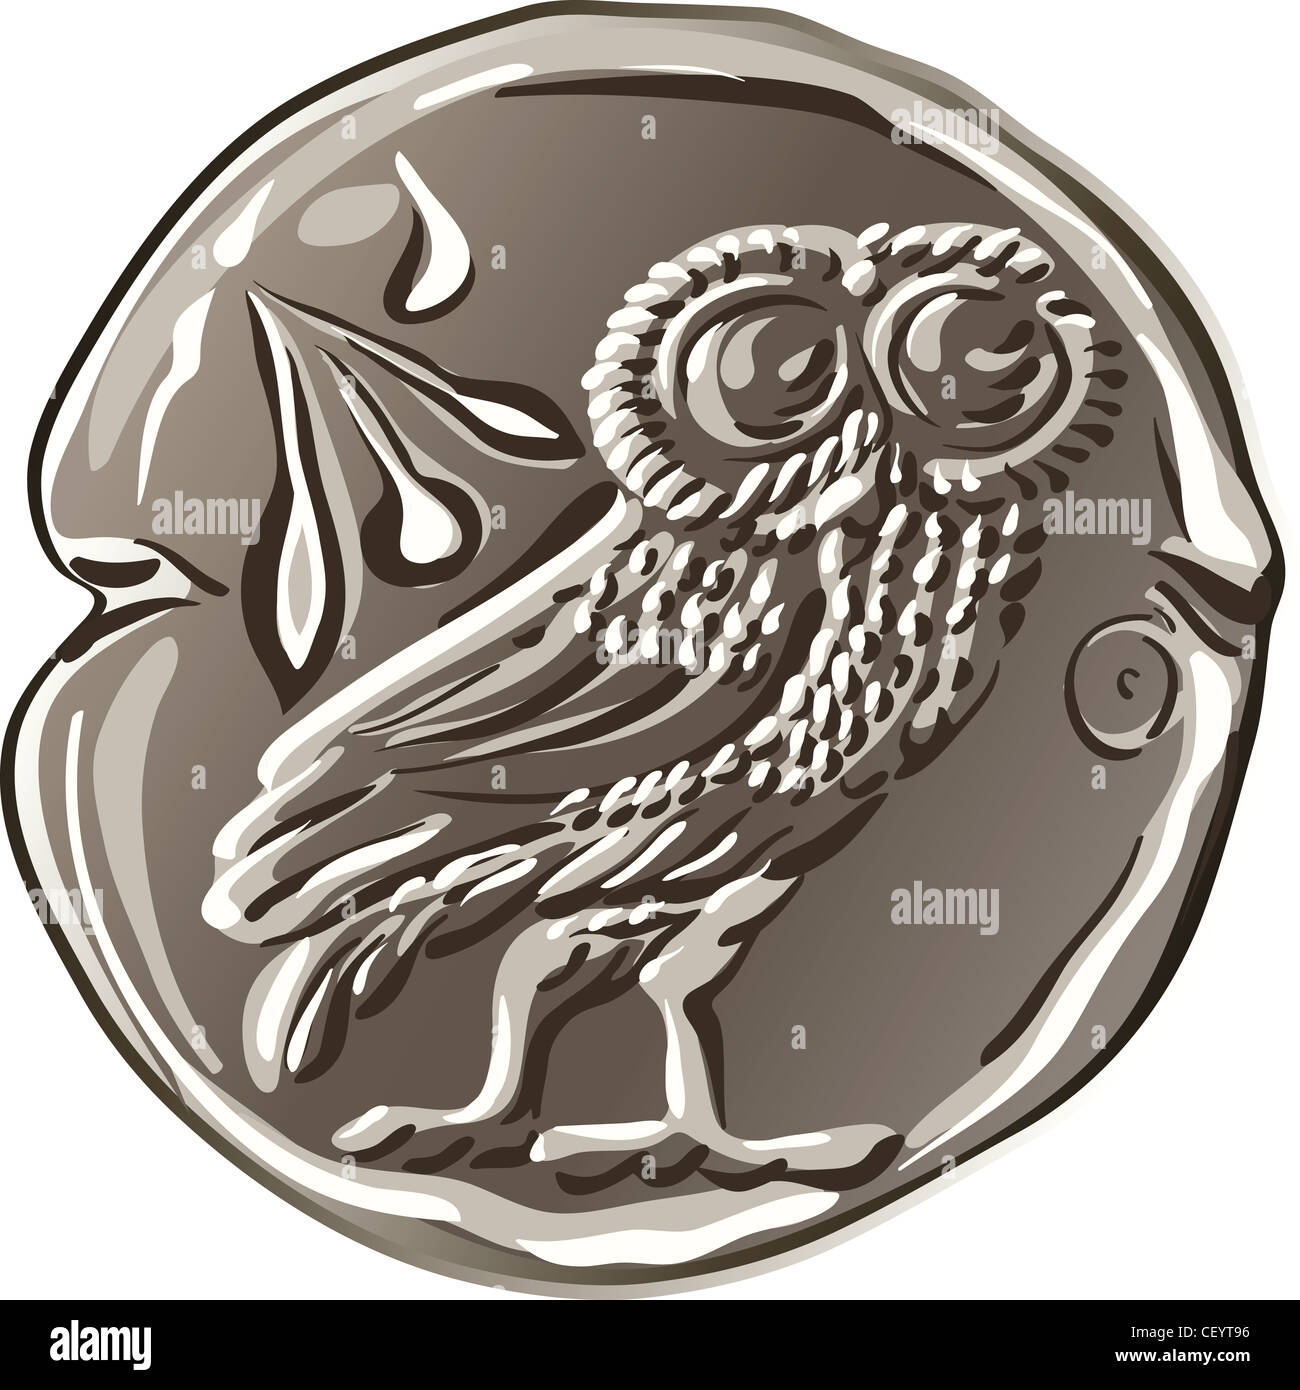 ancient Greek drachma money silver coin with the image of the owl and olive - Stock Image